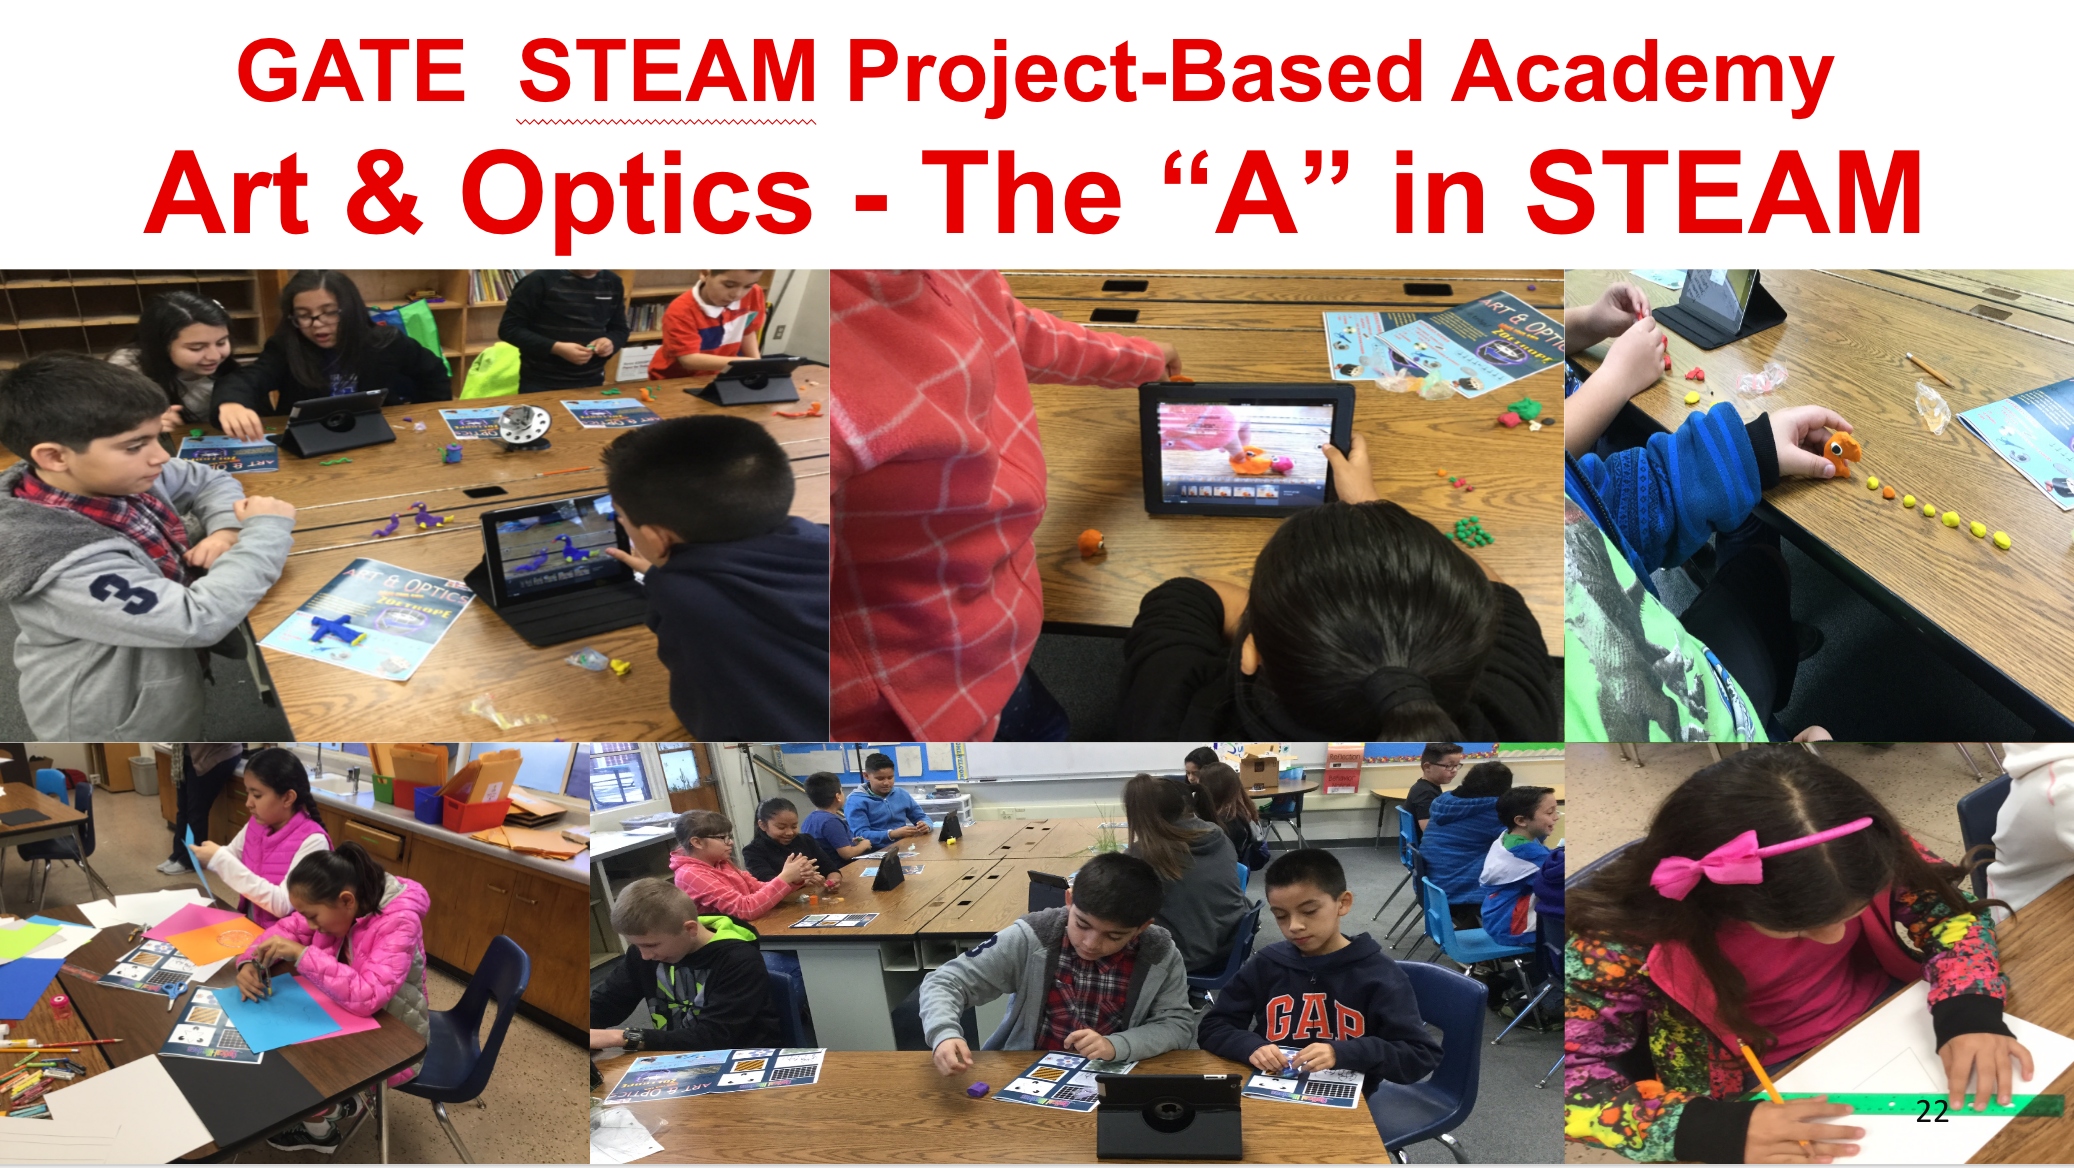 Project-based Academy showing art and optics.